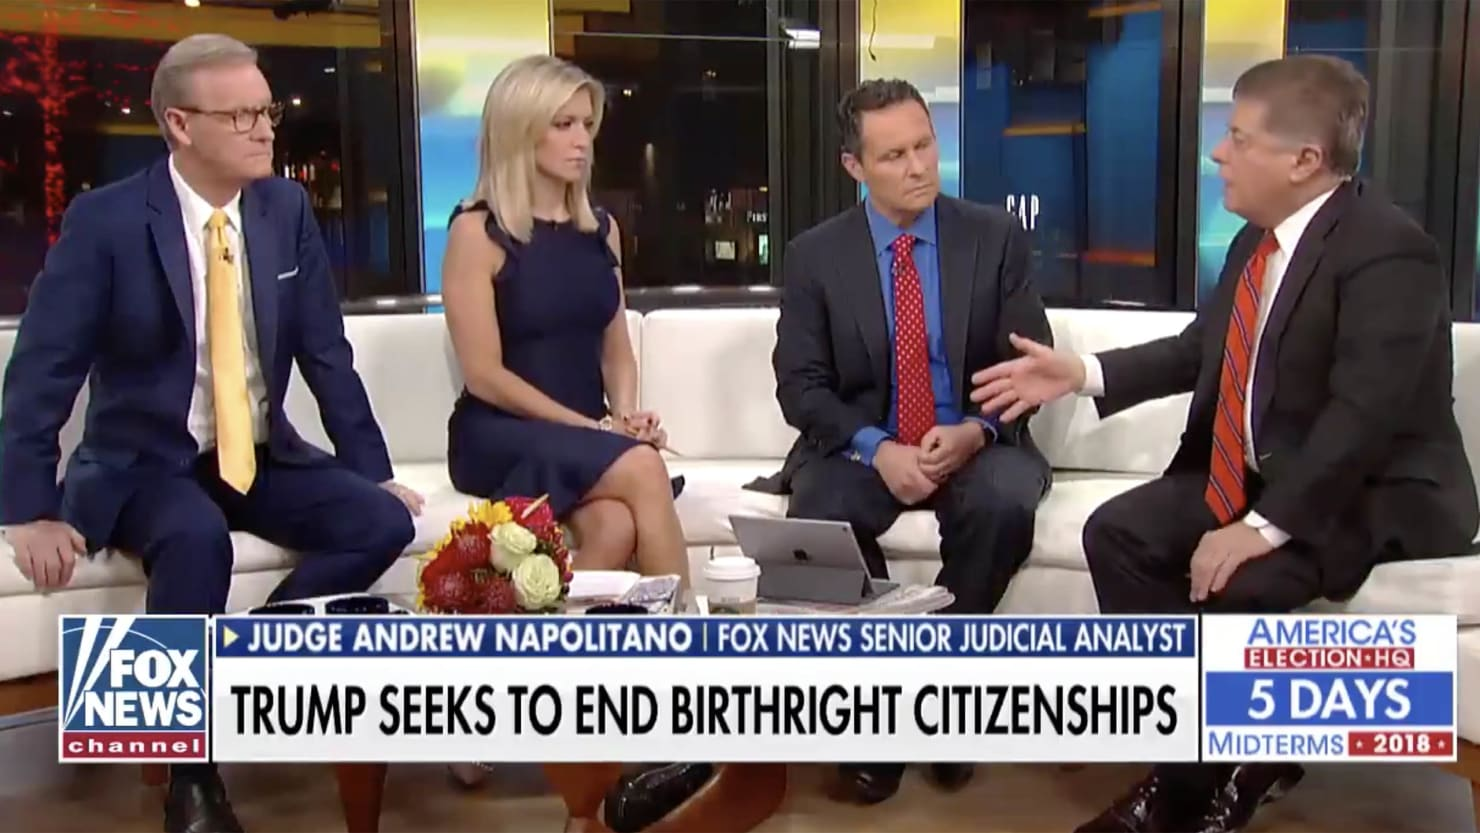 Neopolitino teaches basi civics to Fox and Friends